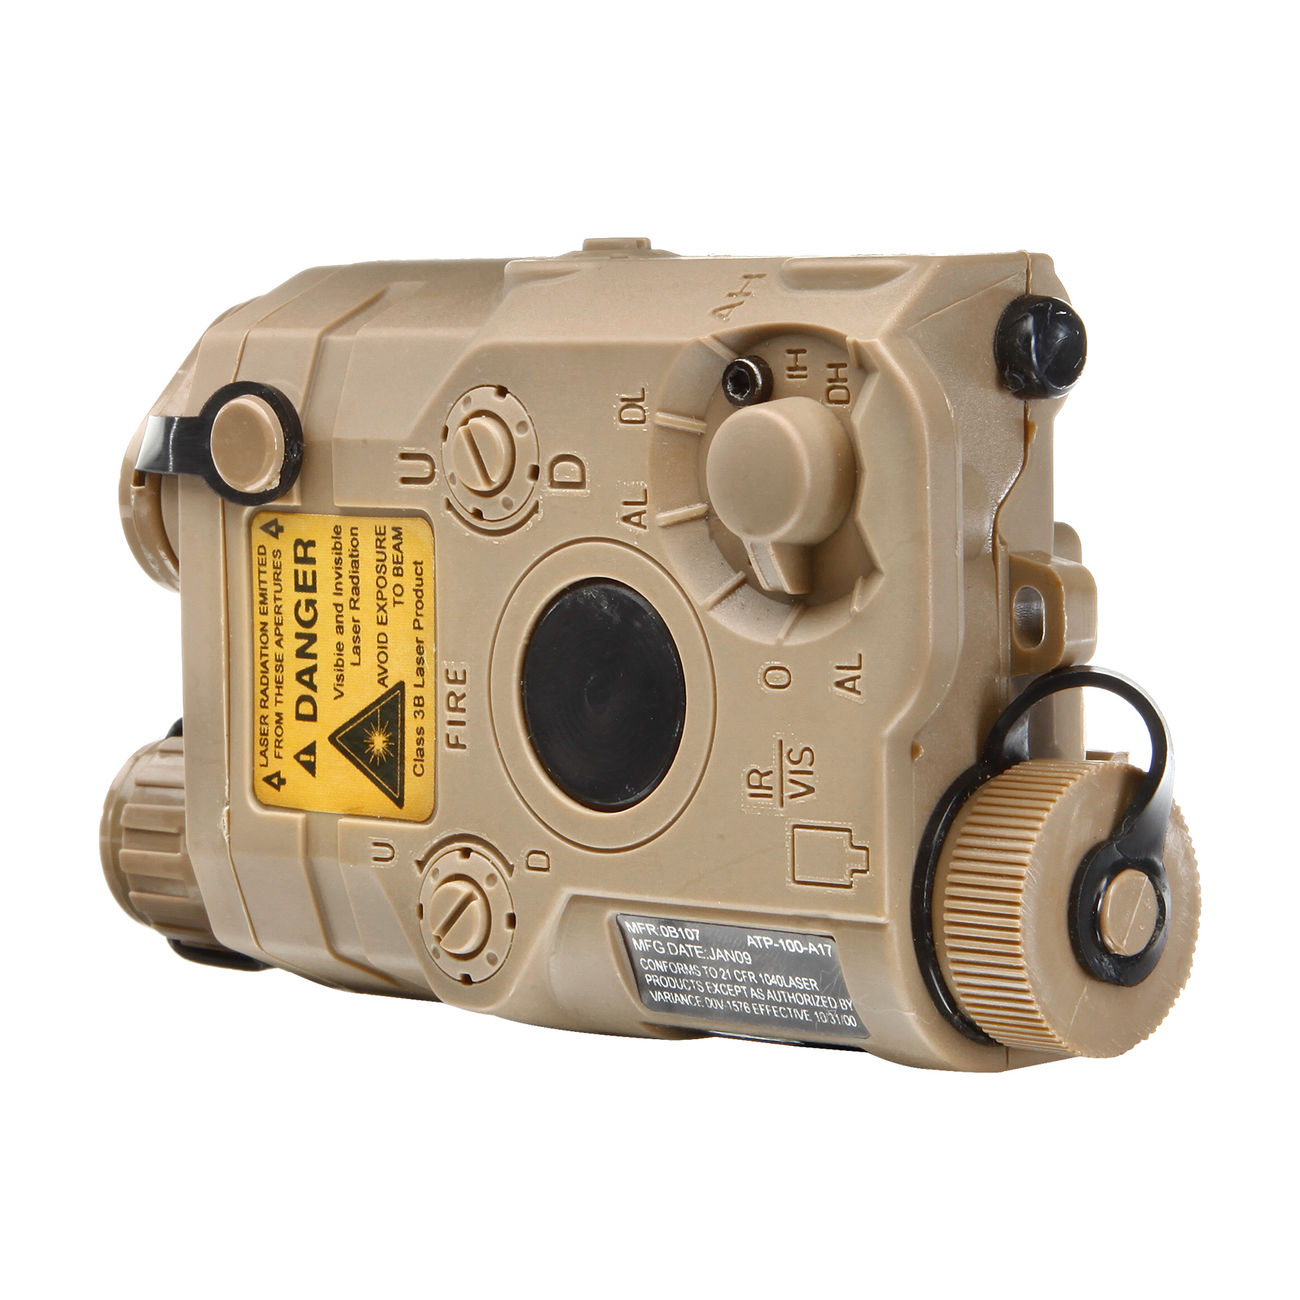 Phantom AN/PEQ-15 Akkubox Tan 3